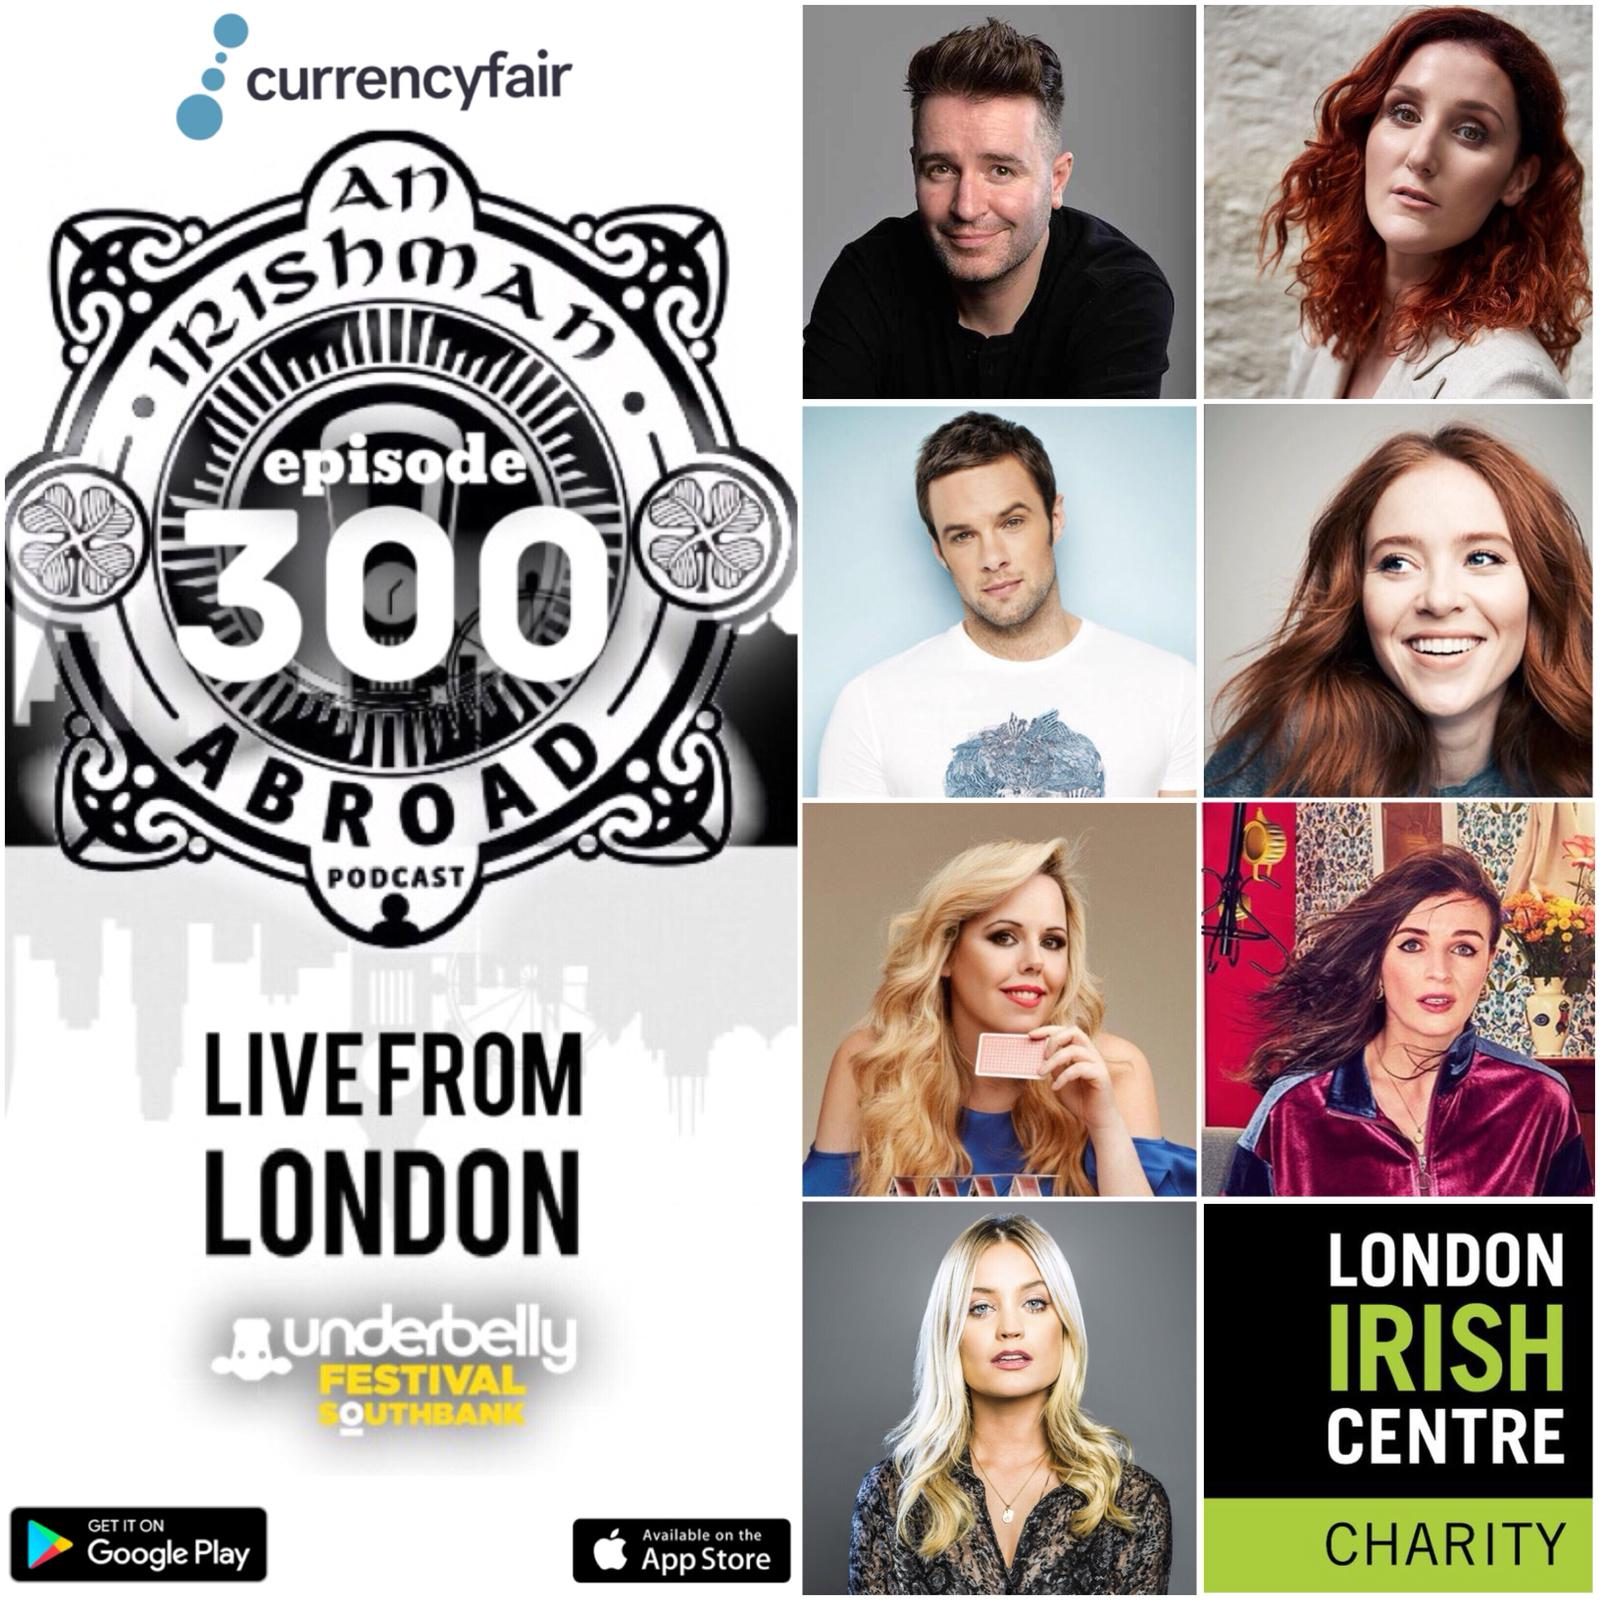 Episode 300 (Live from the Underbelly Festival) with Laura Whitmore, Aisling Bea, Niall Breslin, Angela Scanlon, Roisin Conaty and Bronagh Waugh